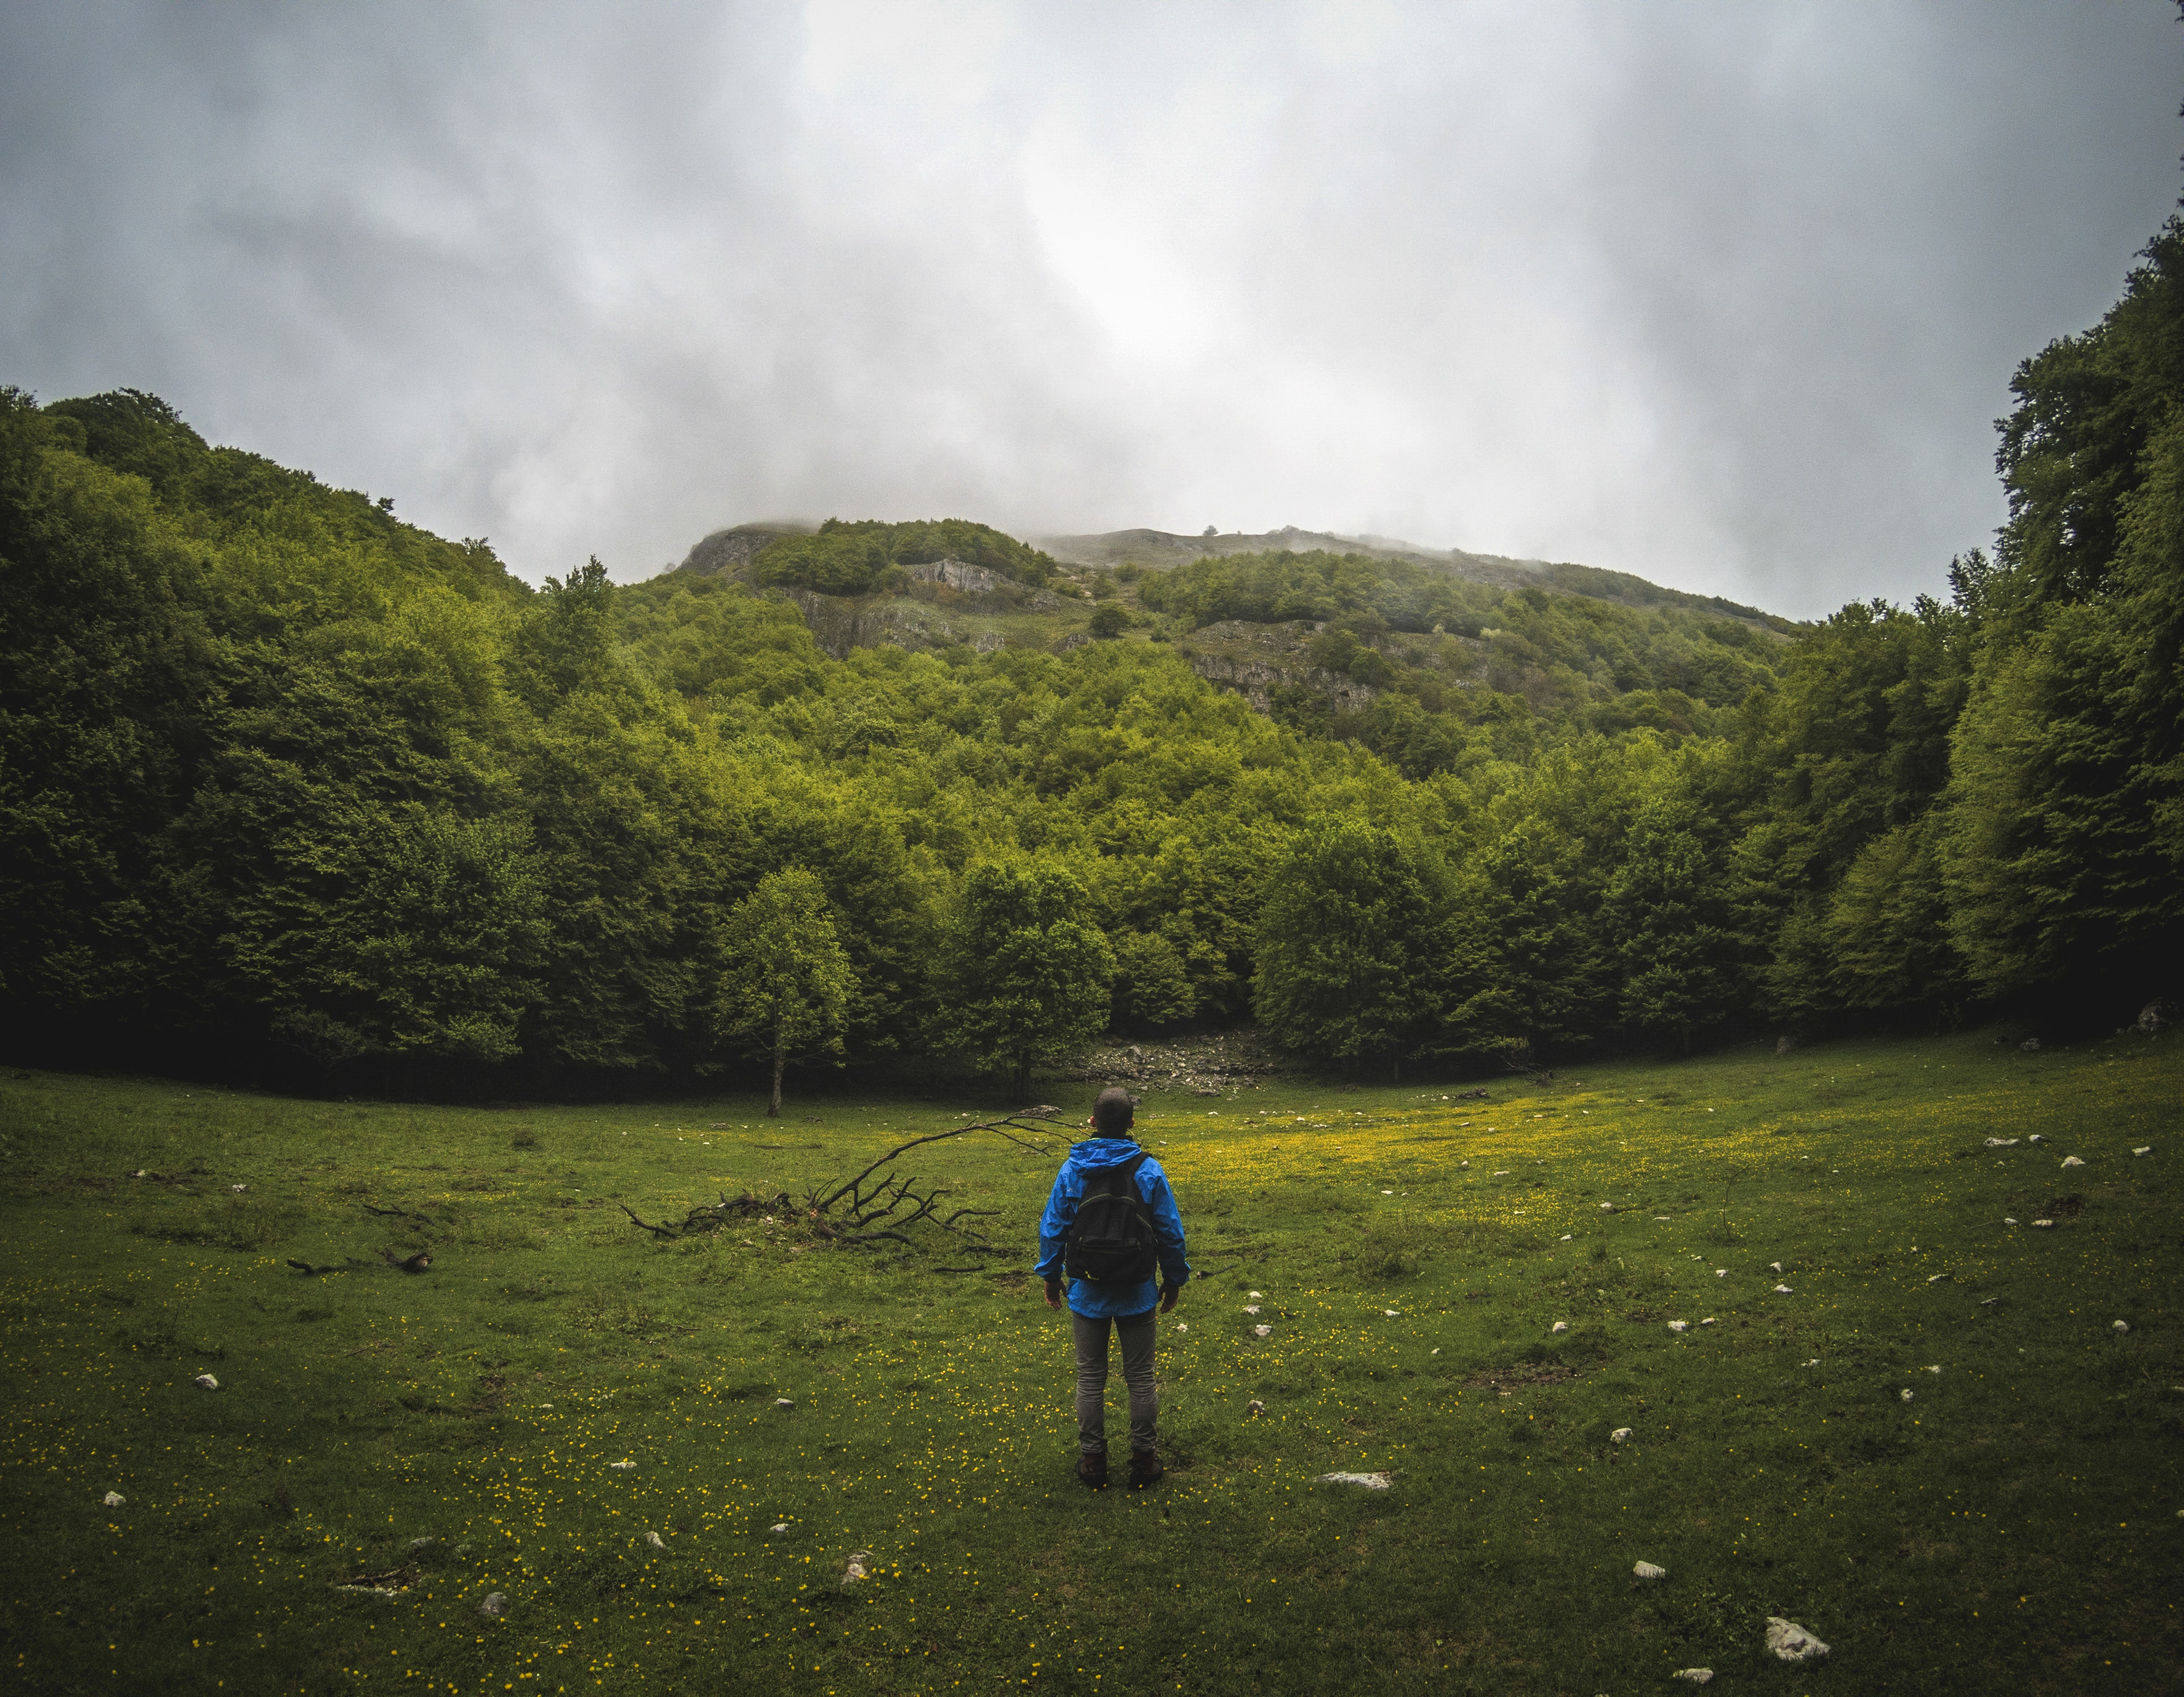 panoramic photography of man in blue jacket standing in front of trees